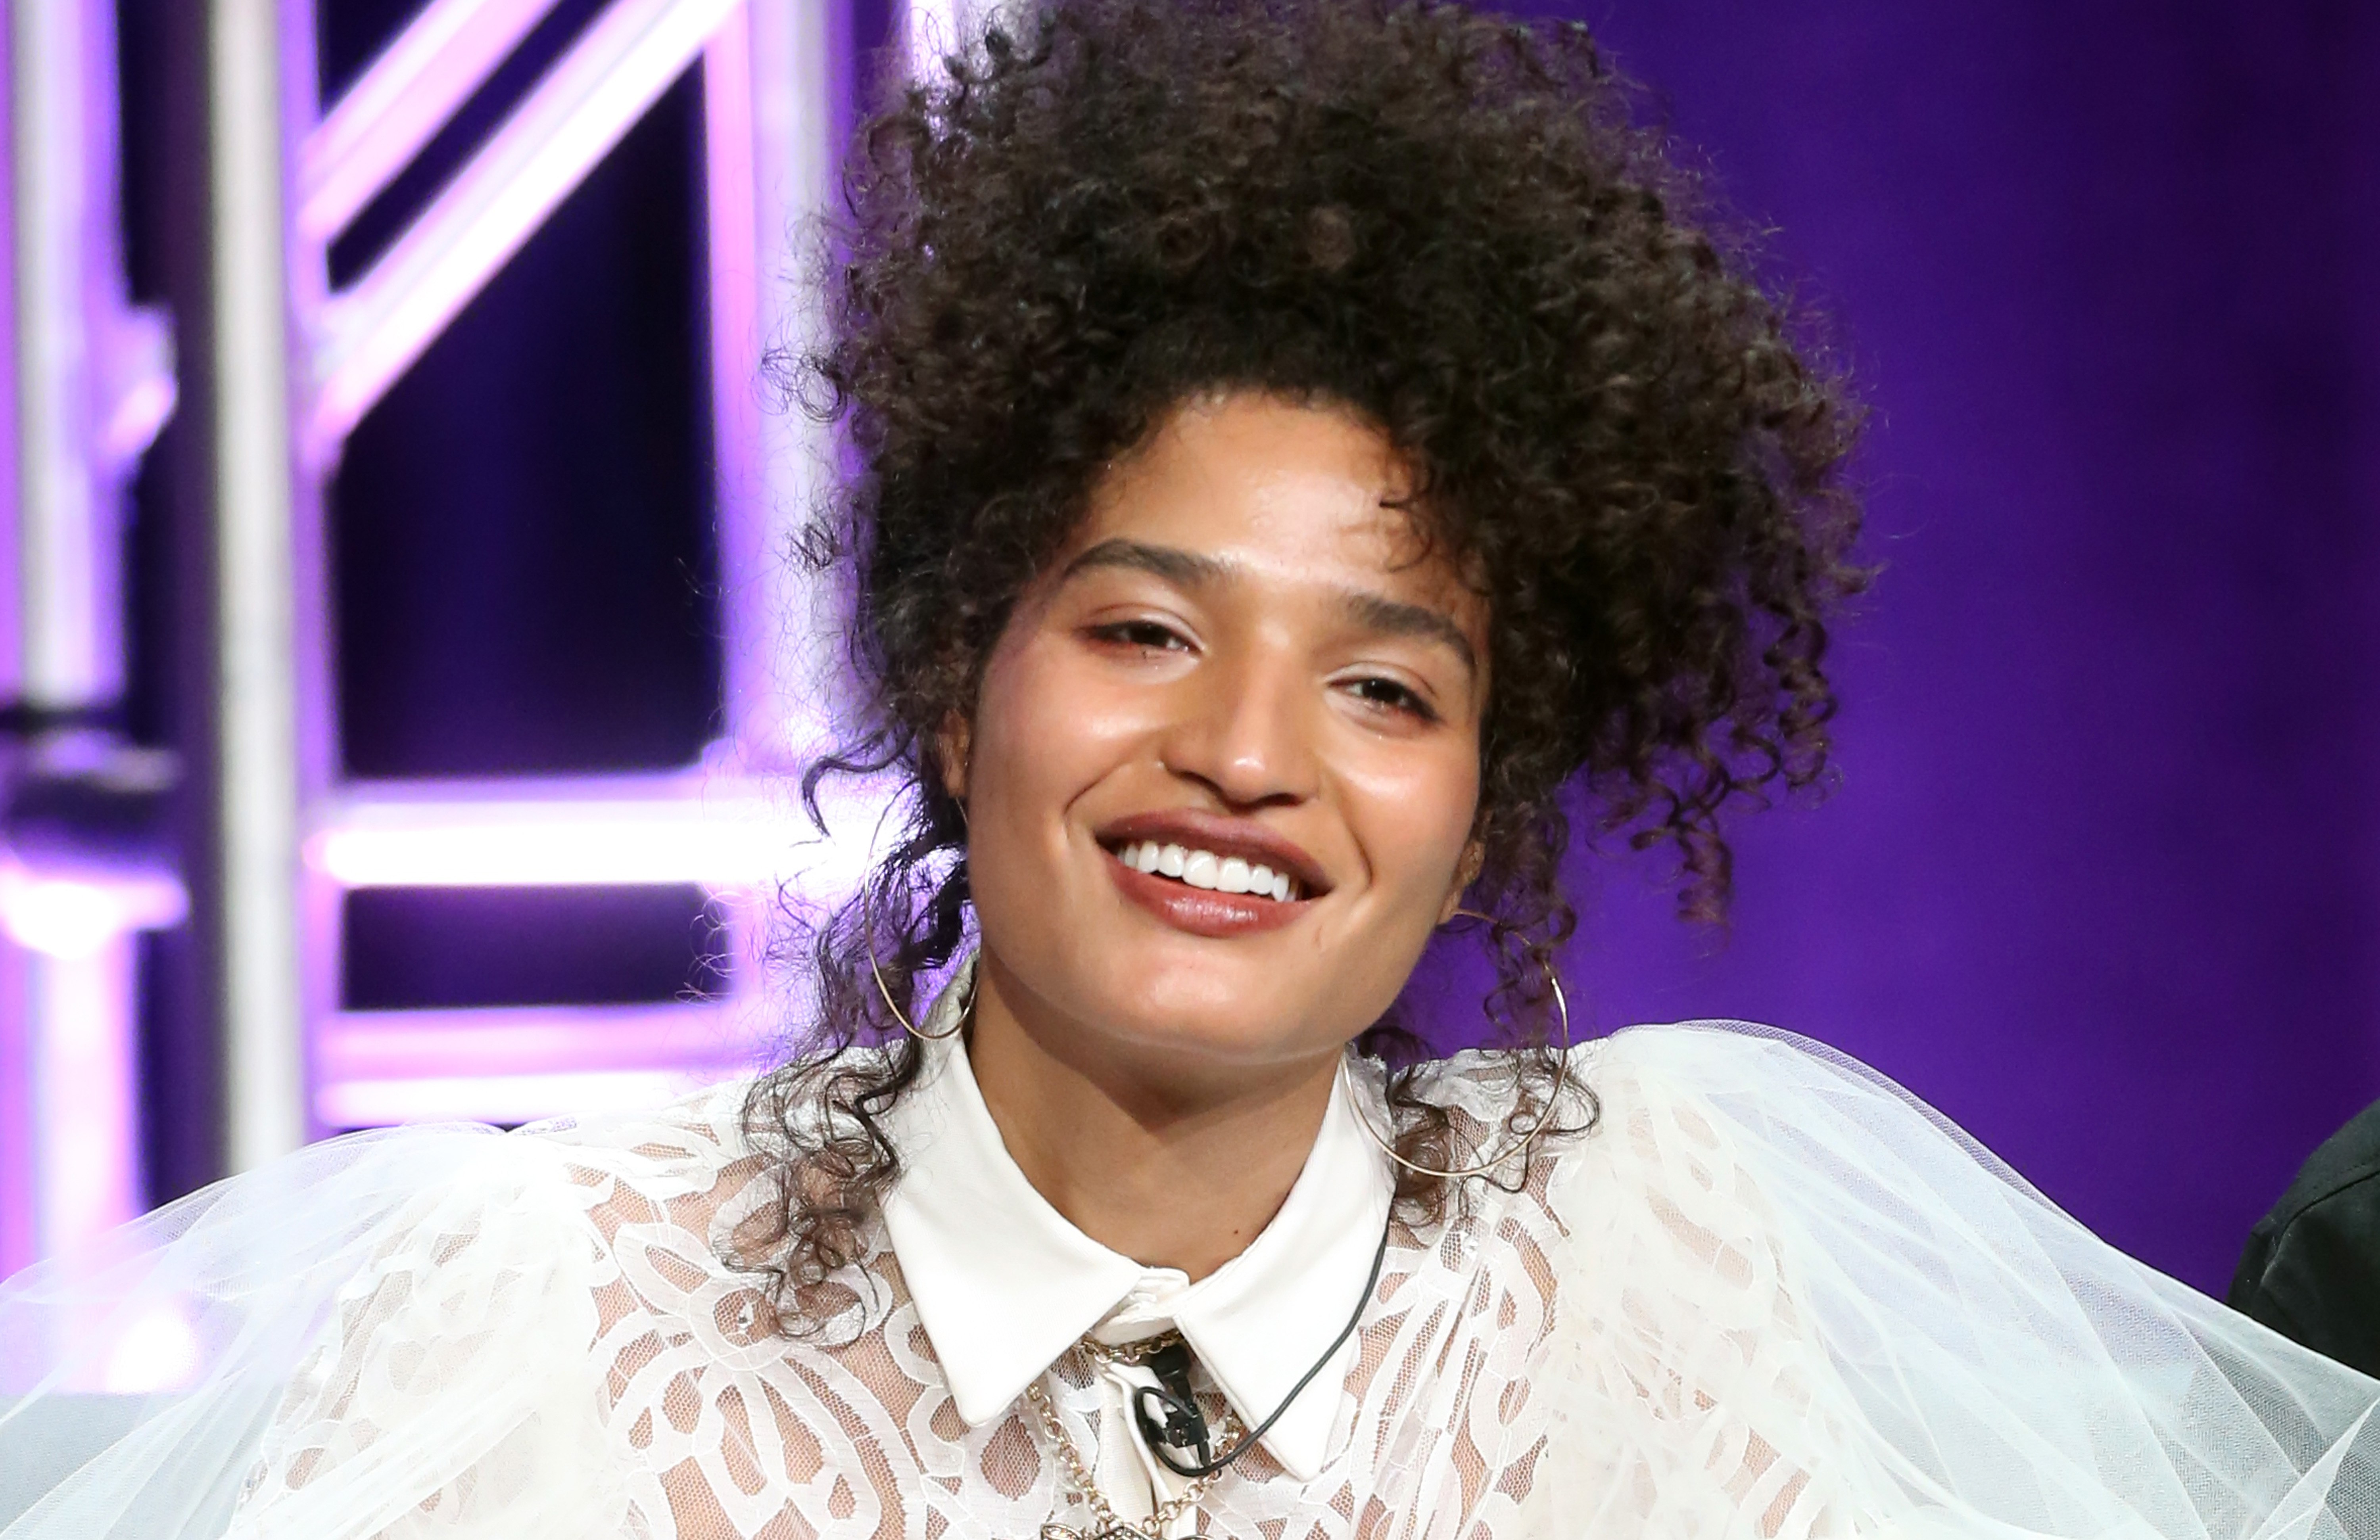 Trans actress Indya Moore speaks onstage at the 'Pose' panel during the FX Network portion of the Summer 2018 TCA Press Tour at The Beverly Hilton Hotel on August 3, 2018